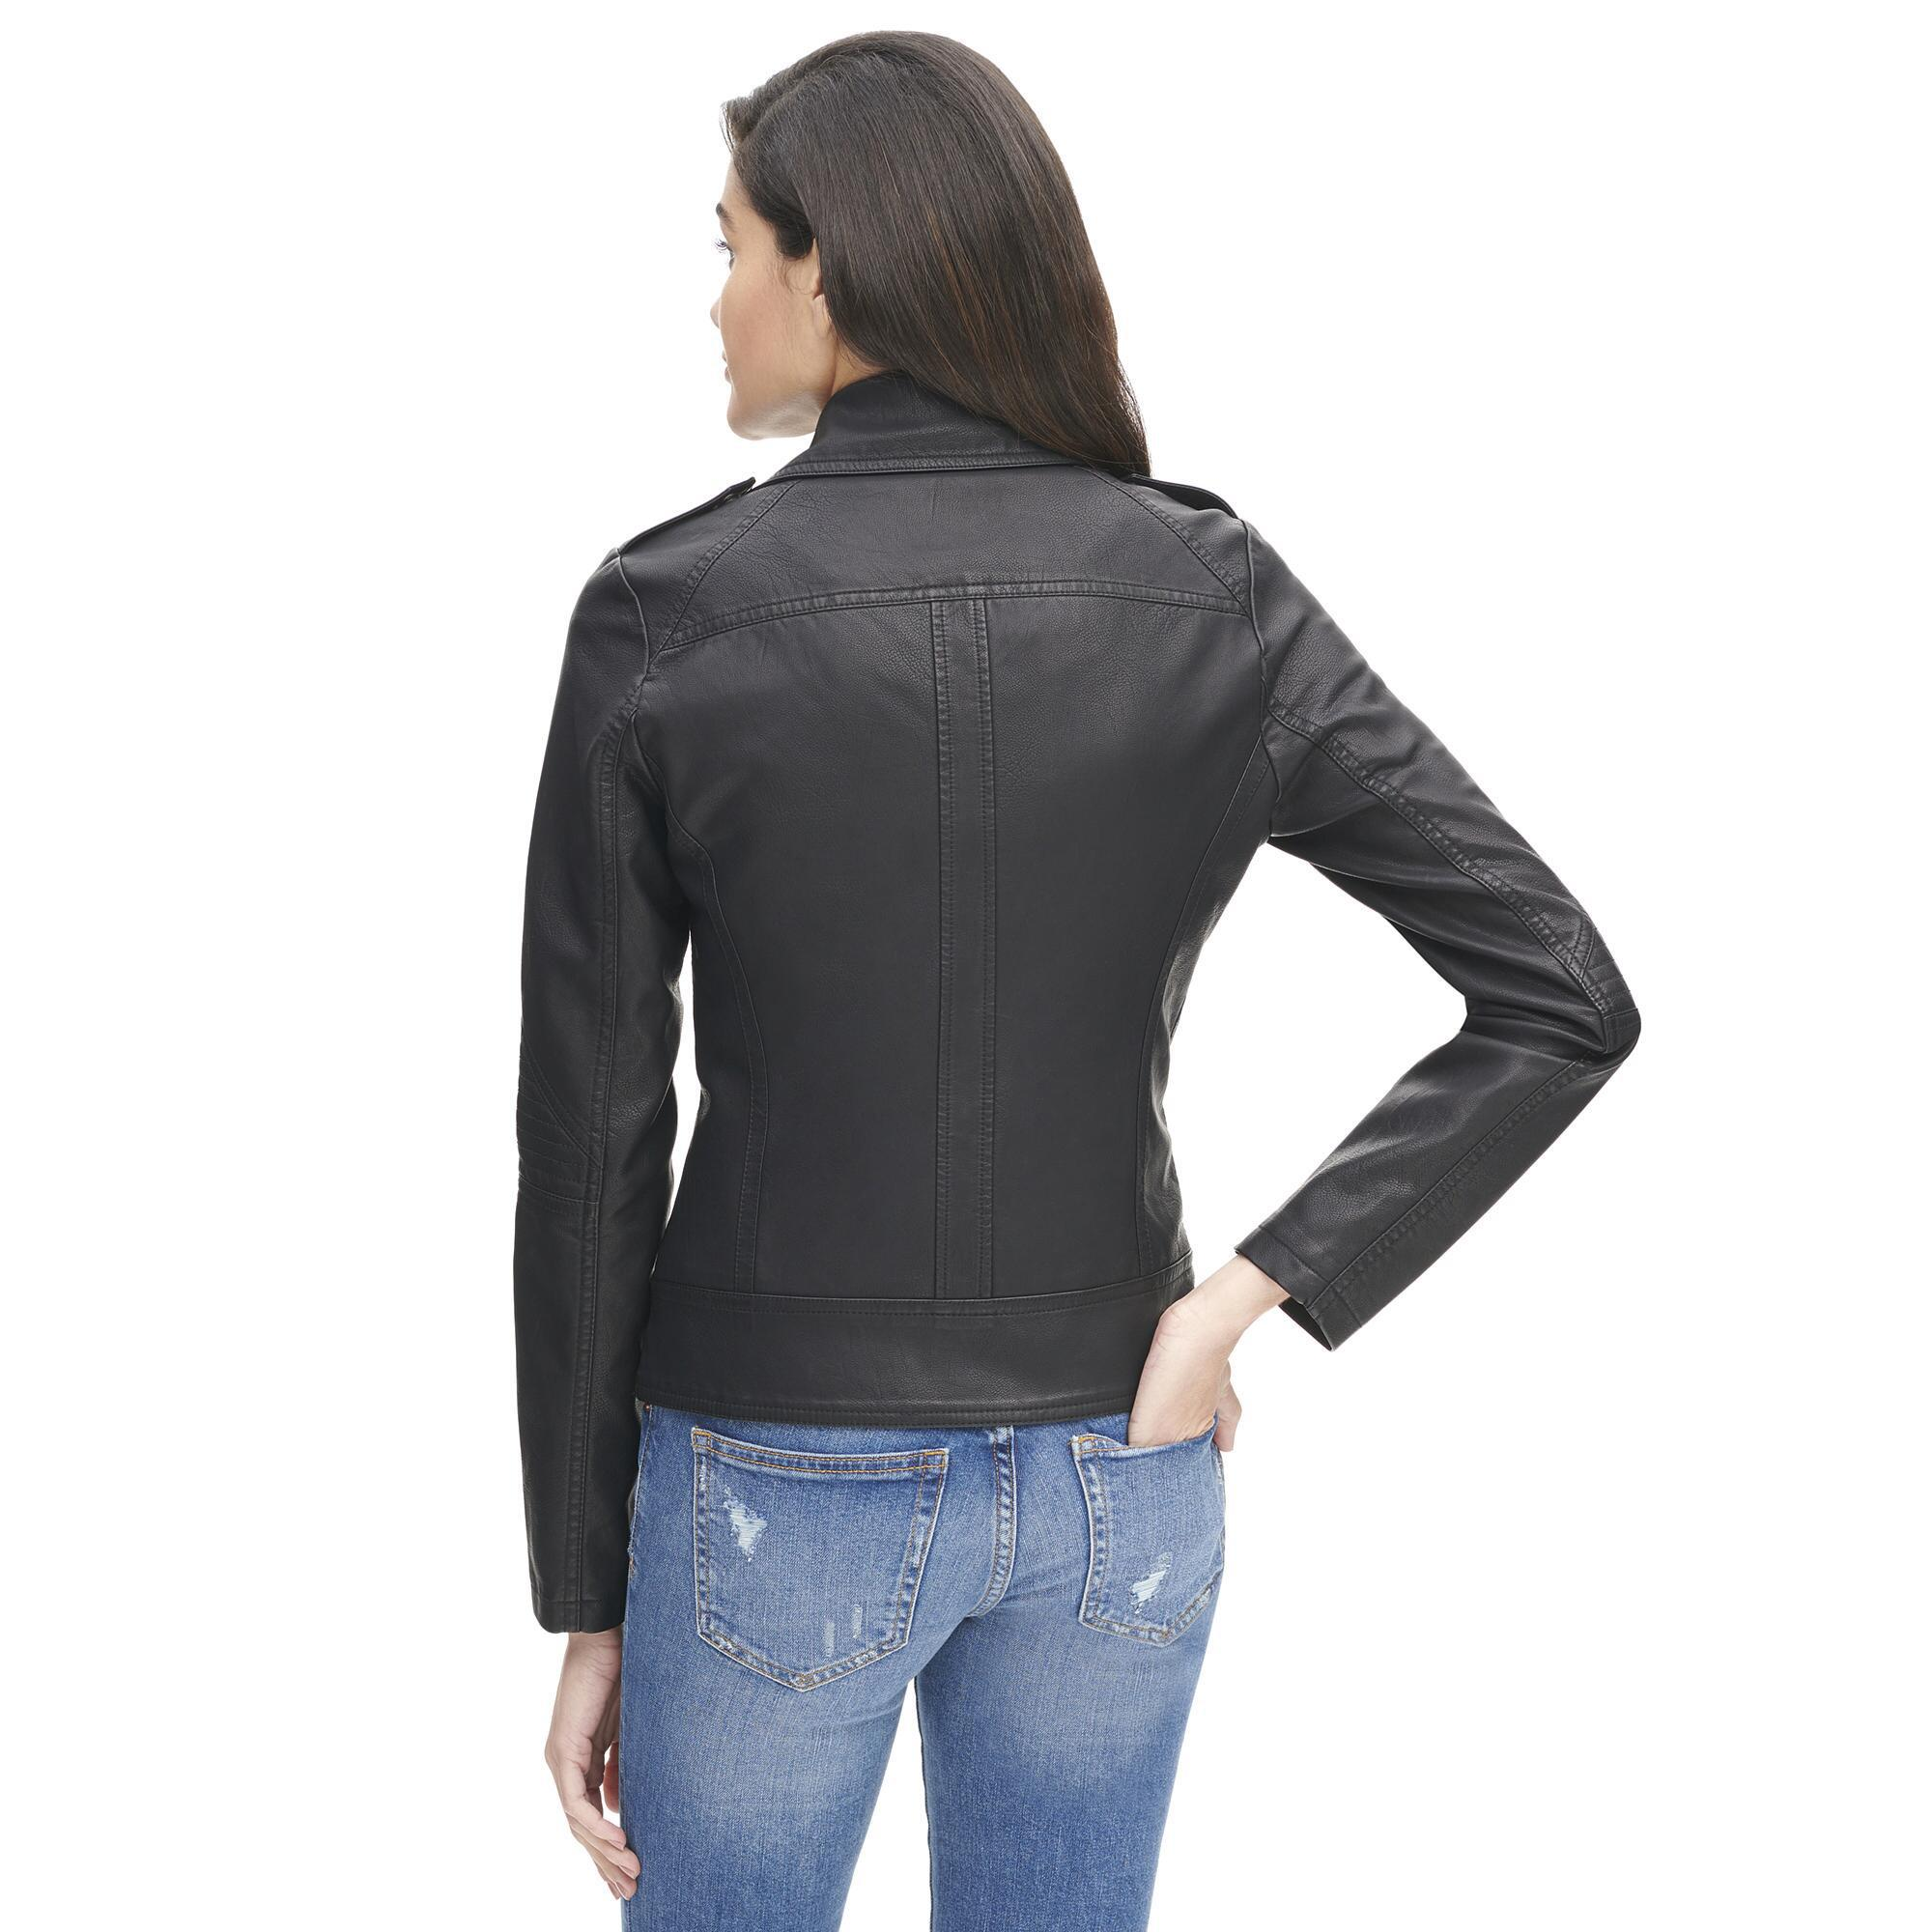 e44cb5192dc54 Wilsons Leather - Black Plus Size Marc New York Faux-leather Cycle Jacket W .  View fullscreen